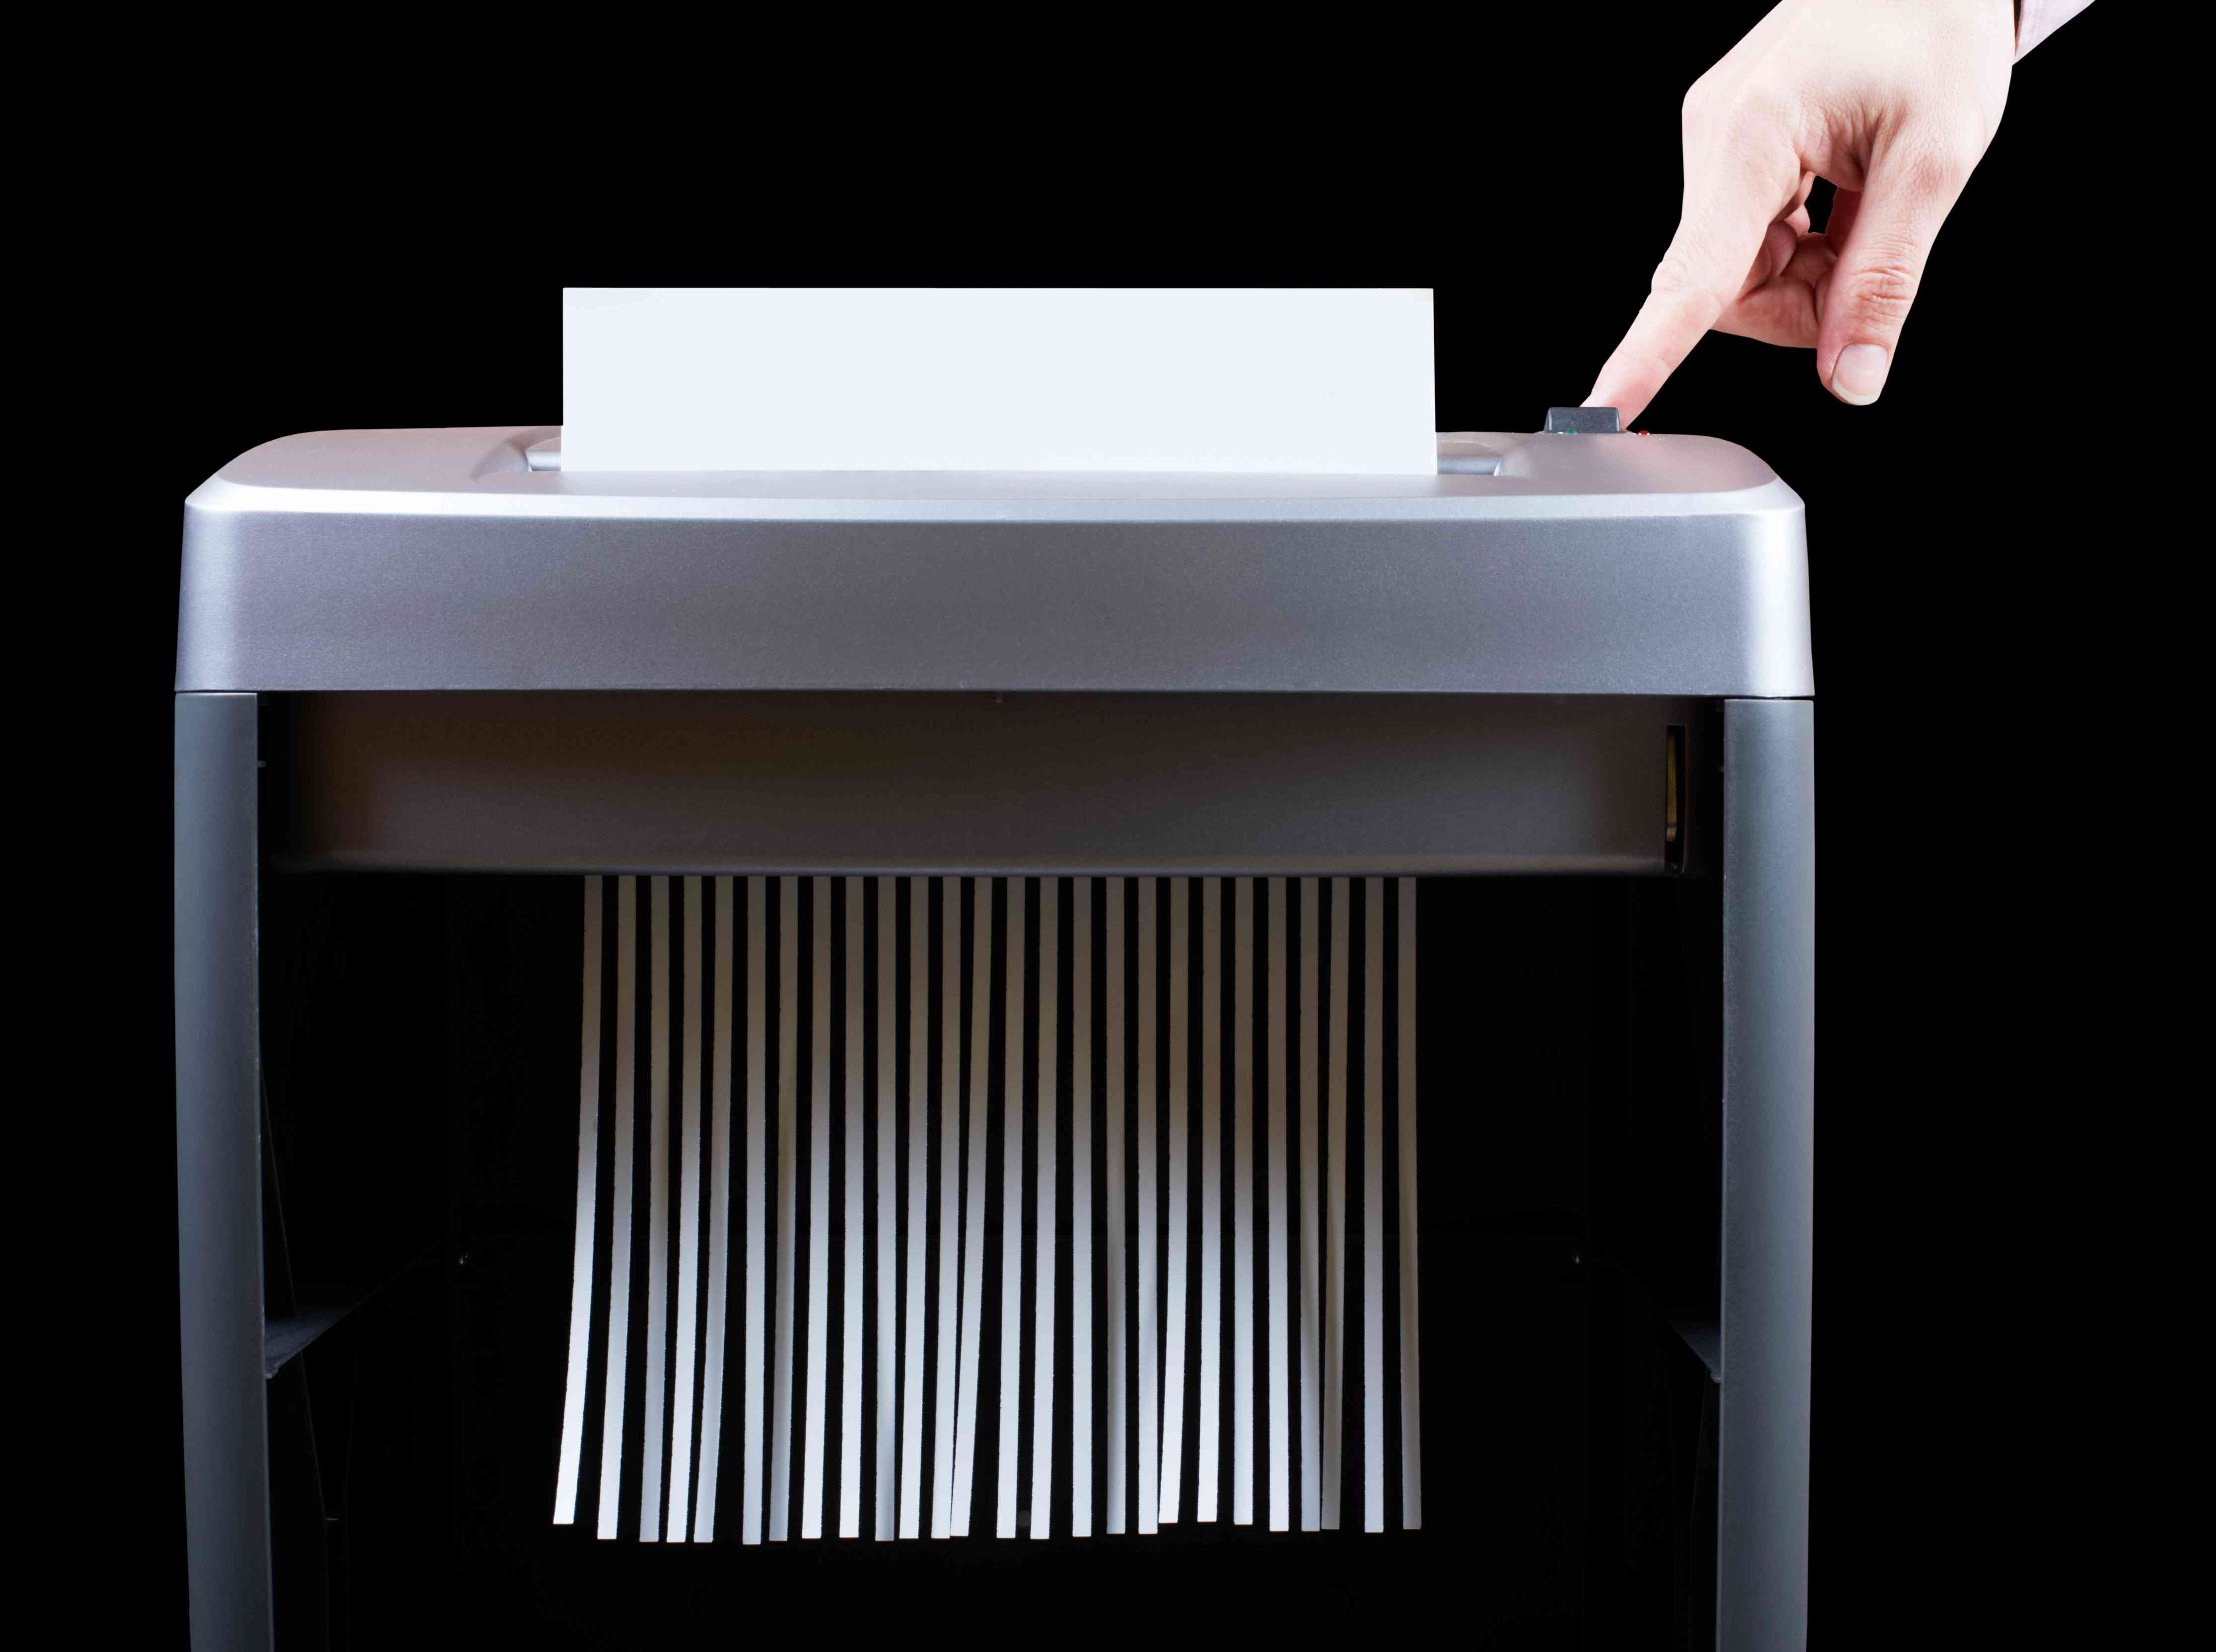 Closeup of a shredder with a hand pushing its button